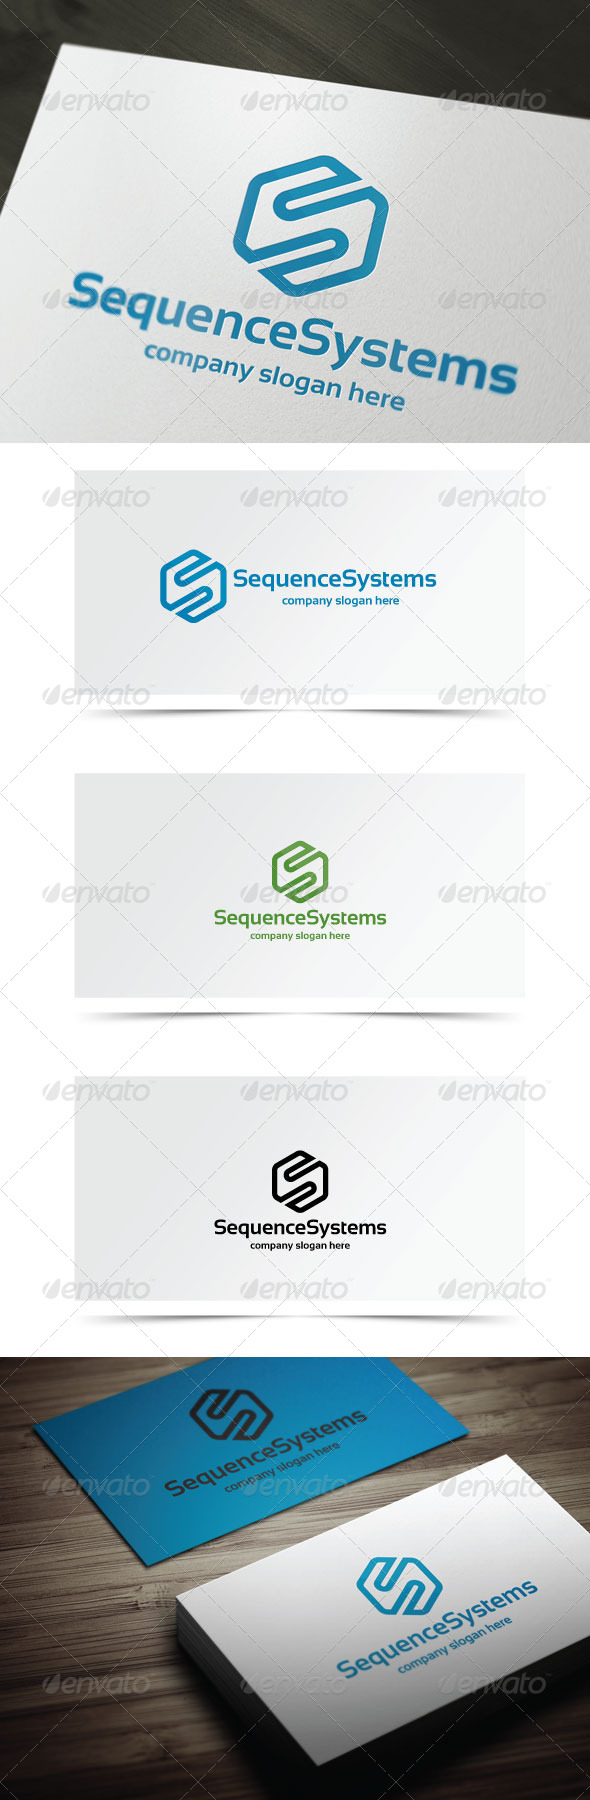 GraphicRiver Sequence Systems 6981199